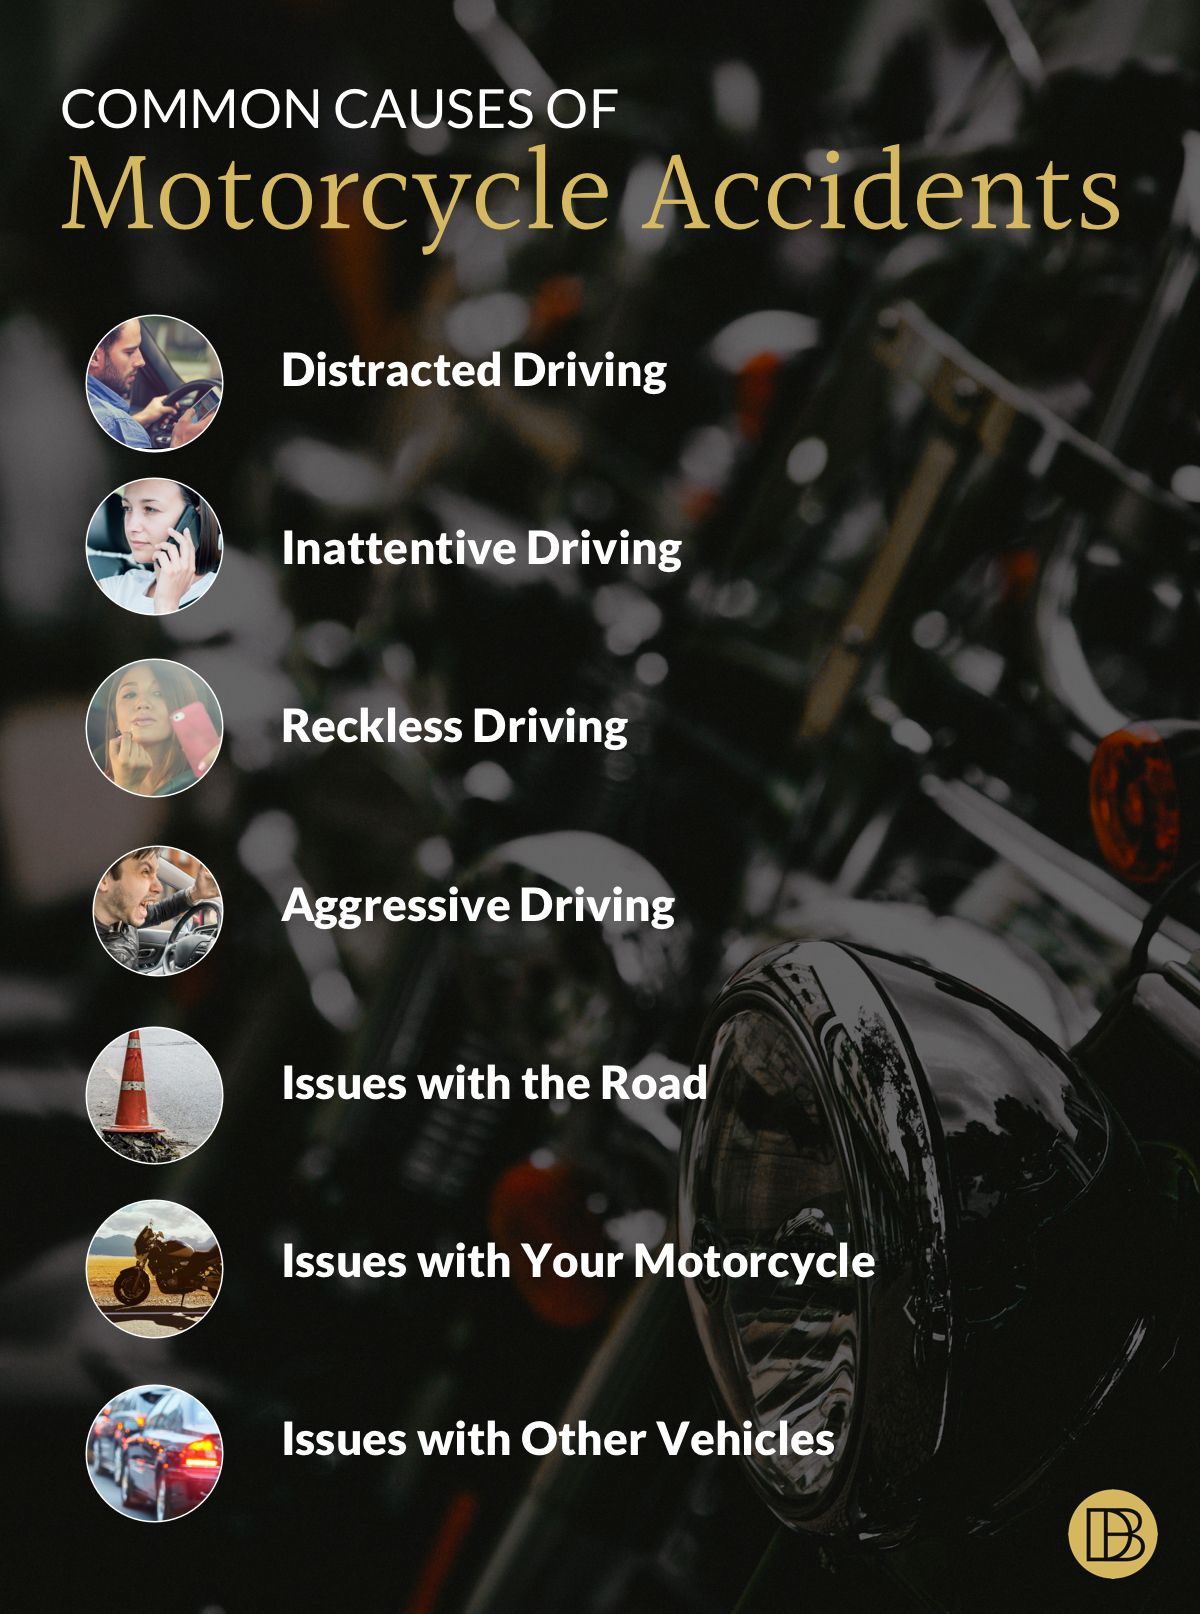 Leading Causes of Motorcycle Accidents